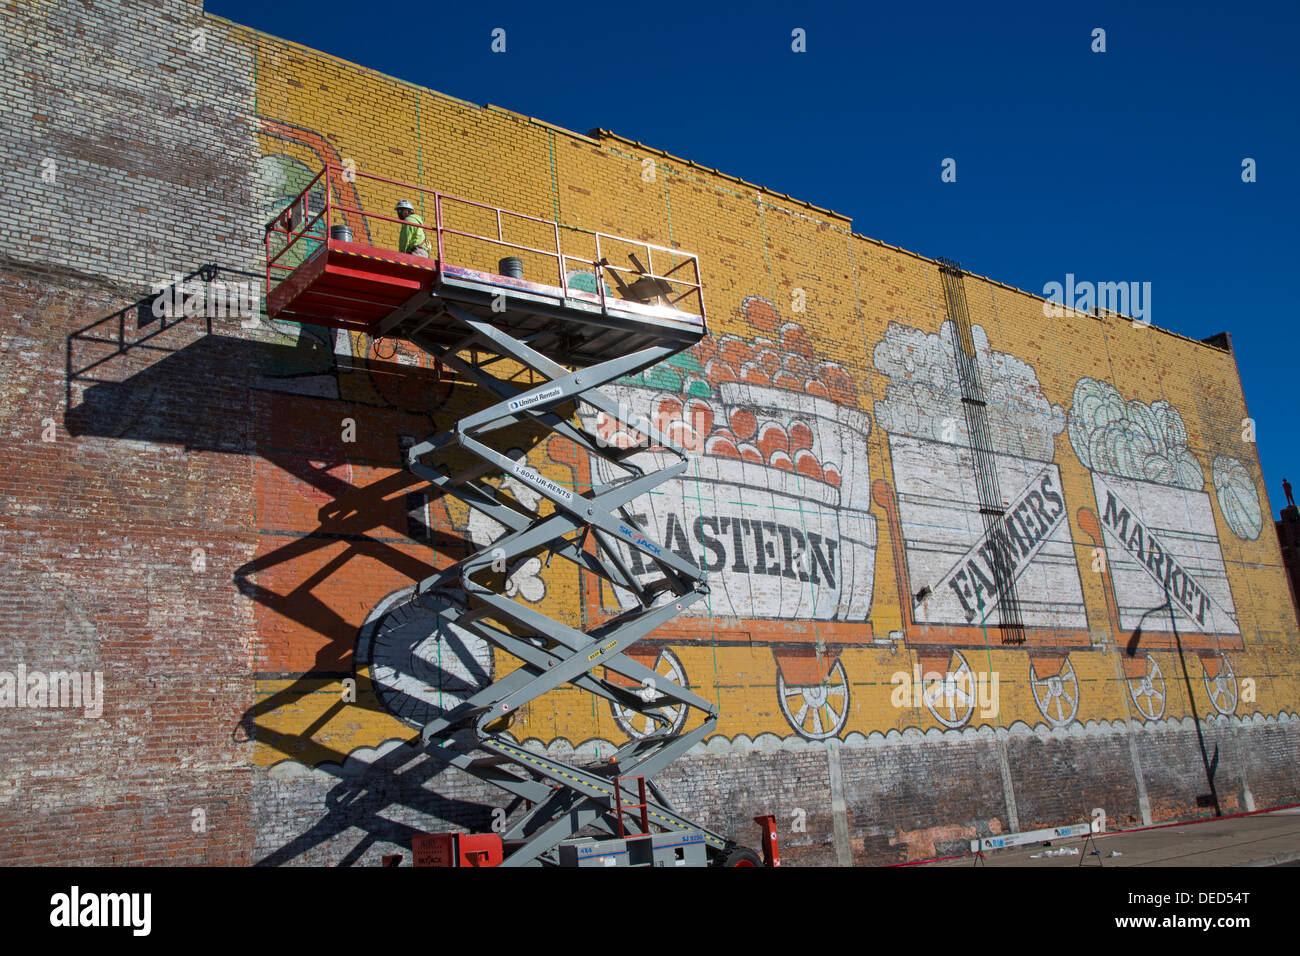 Detroit, Michigan - A worker repairs the painting on a wall at Eastern Market, the city's major farmers' market. - Stock Image